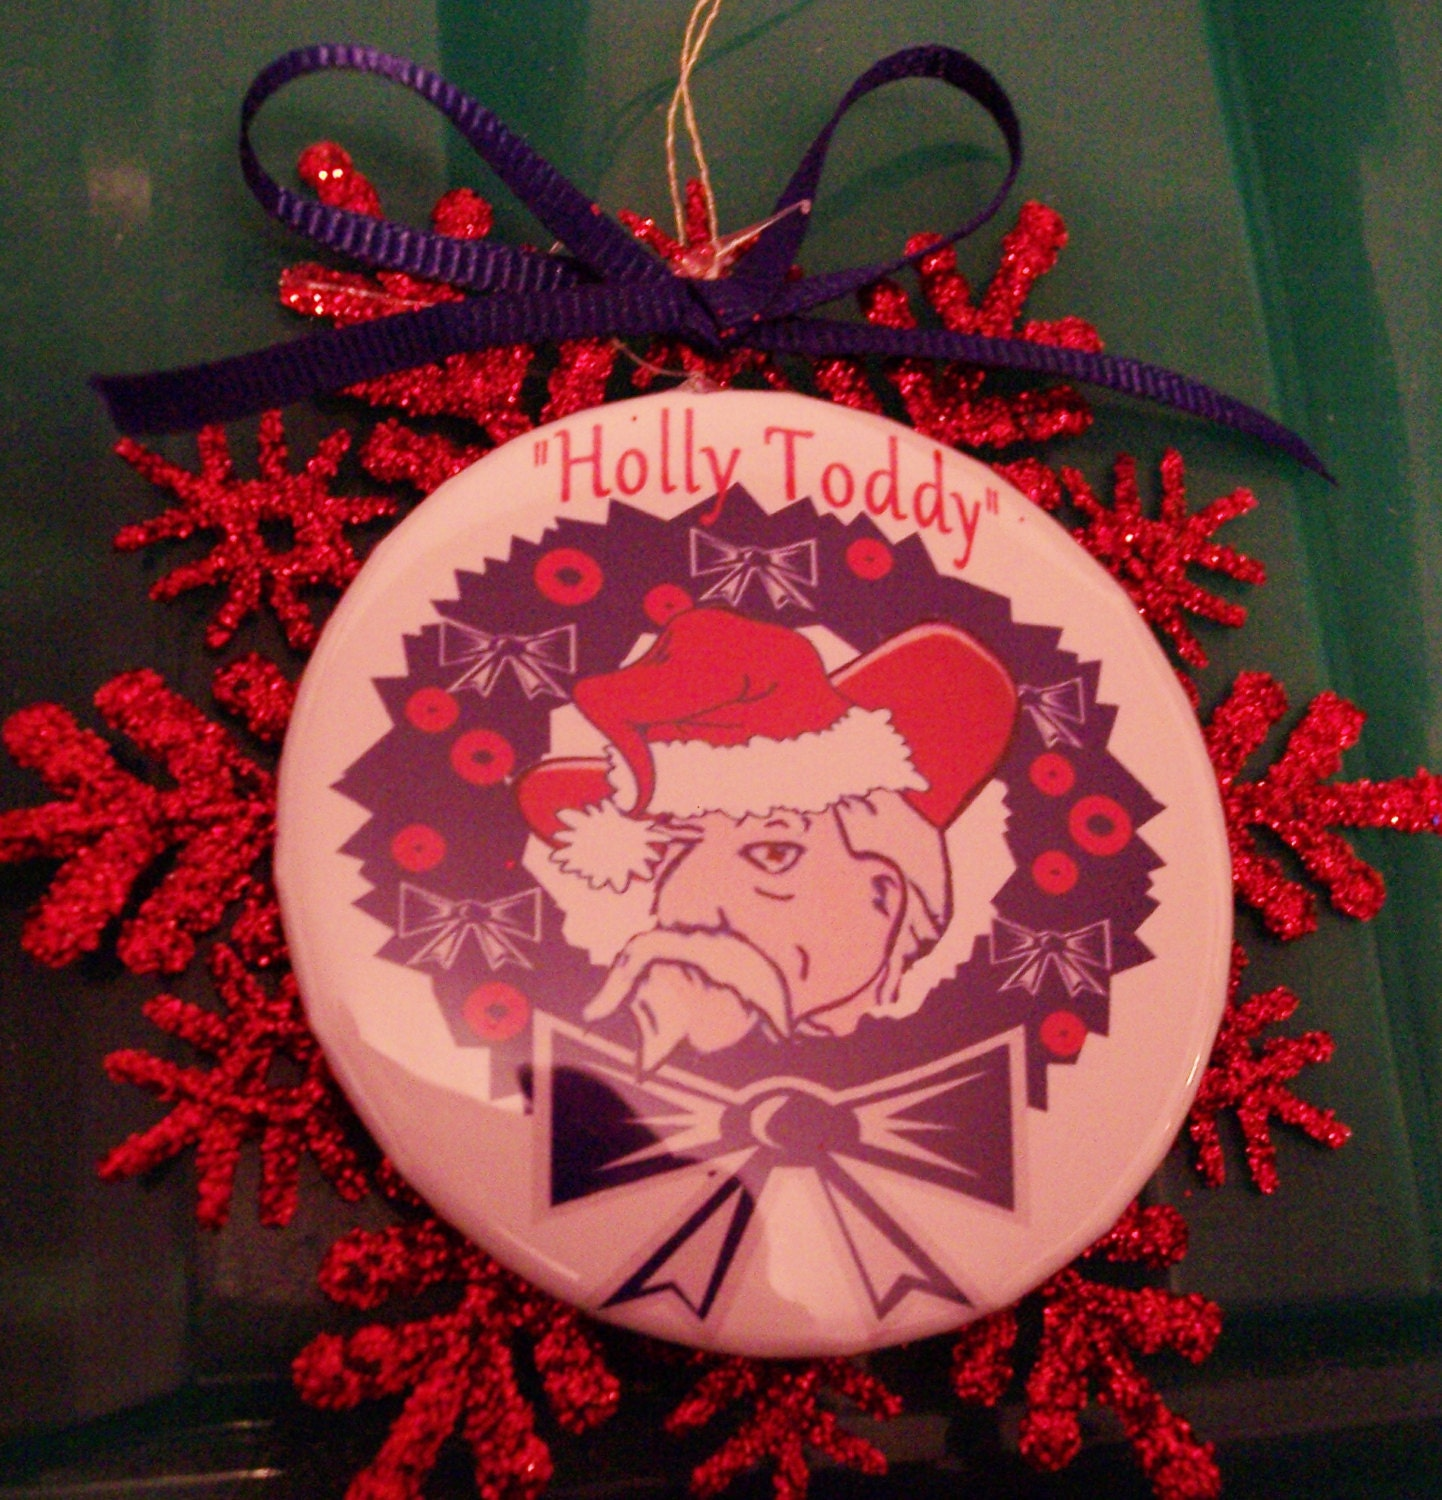 Ole Miss Colo nel Reb Holly Toddy pin with Red Wreath Ornament